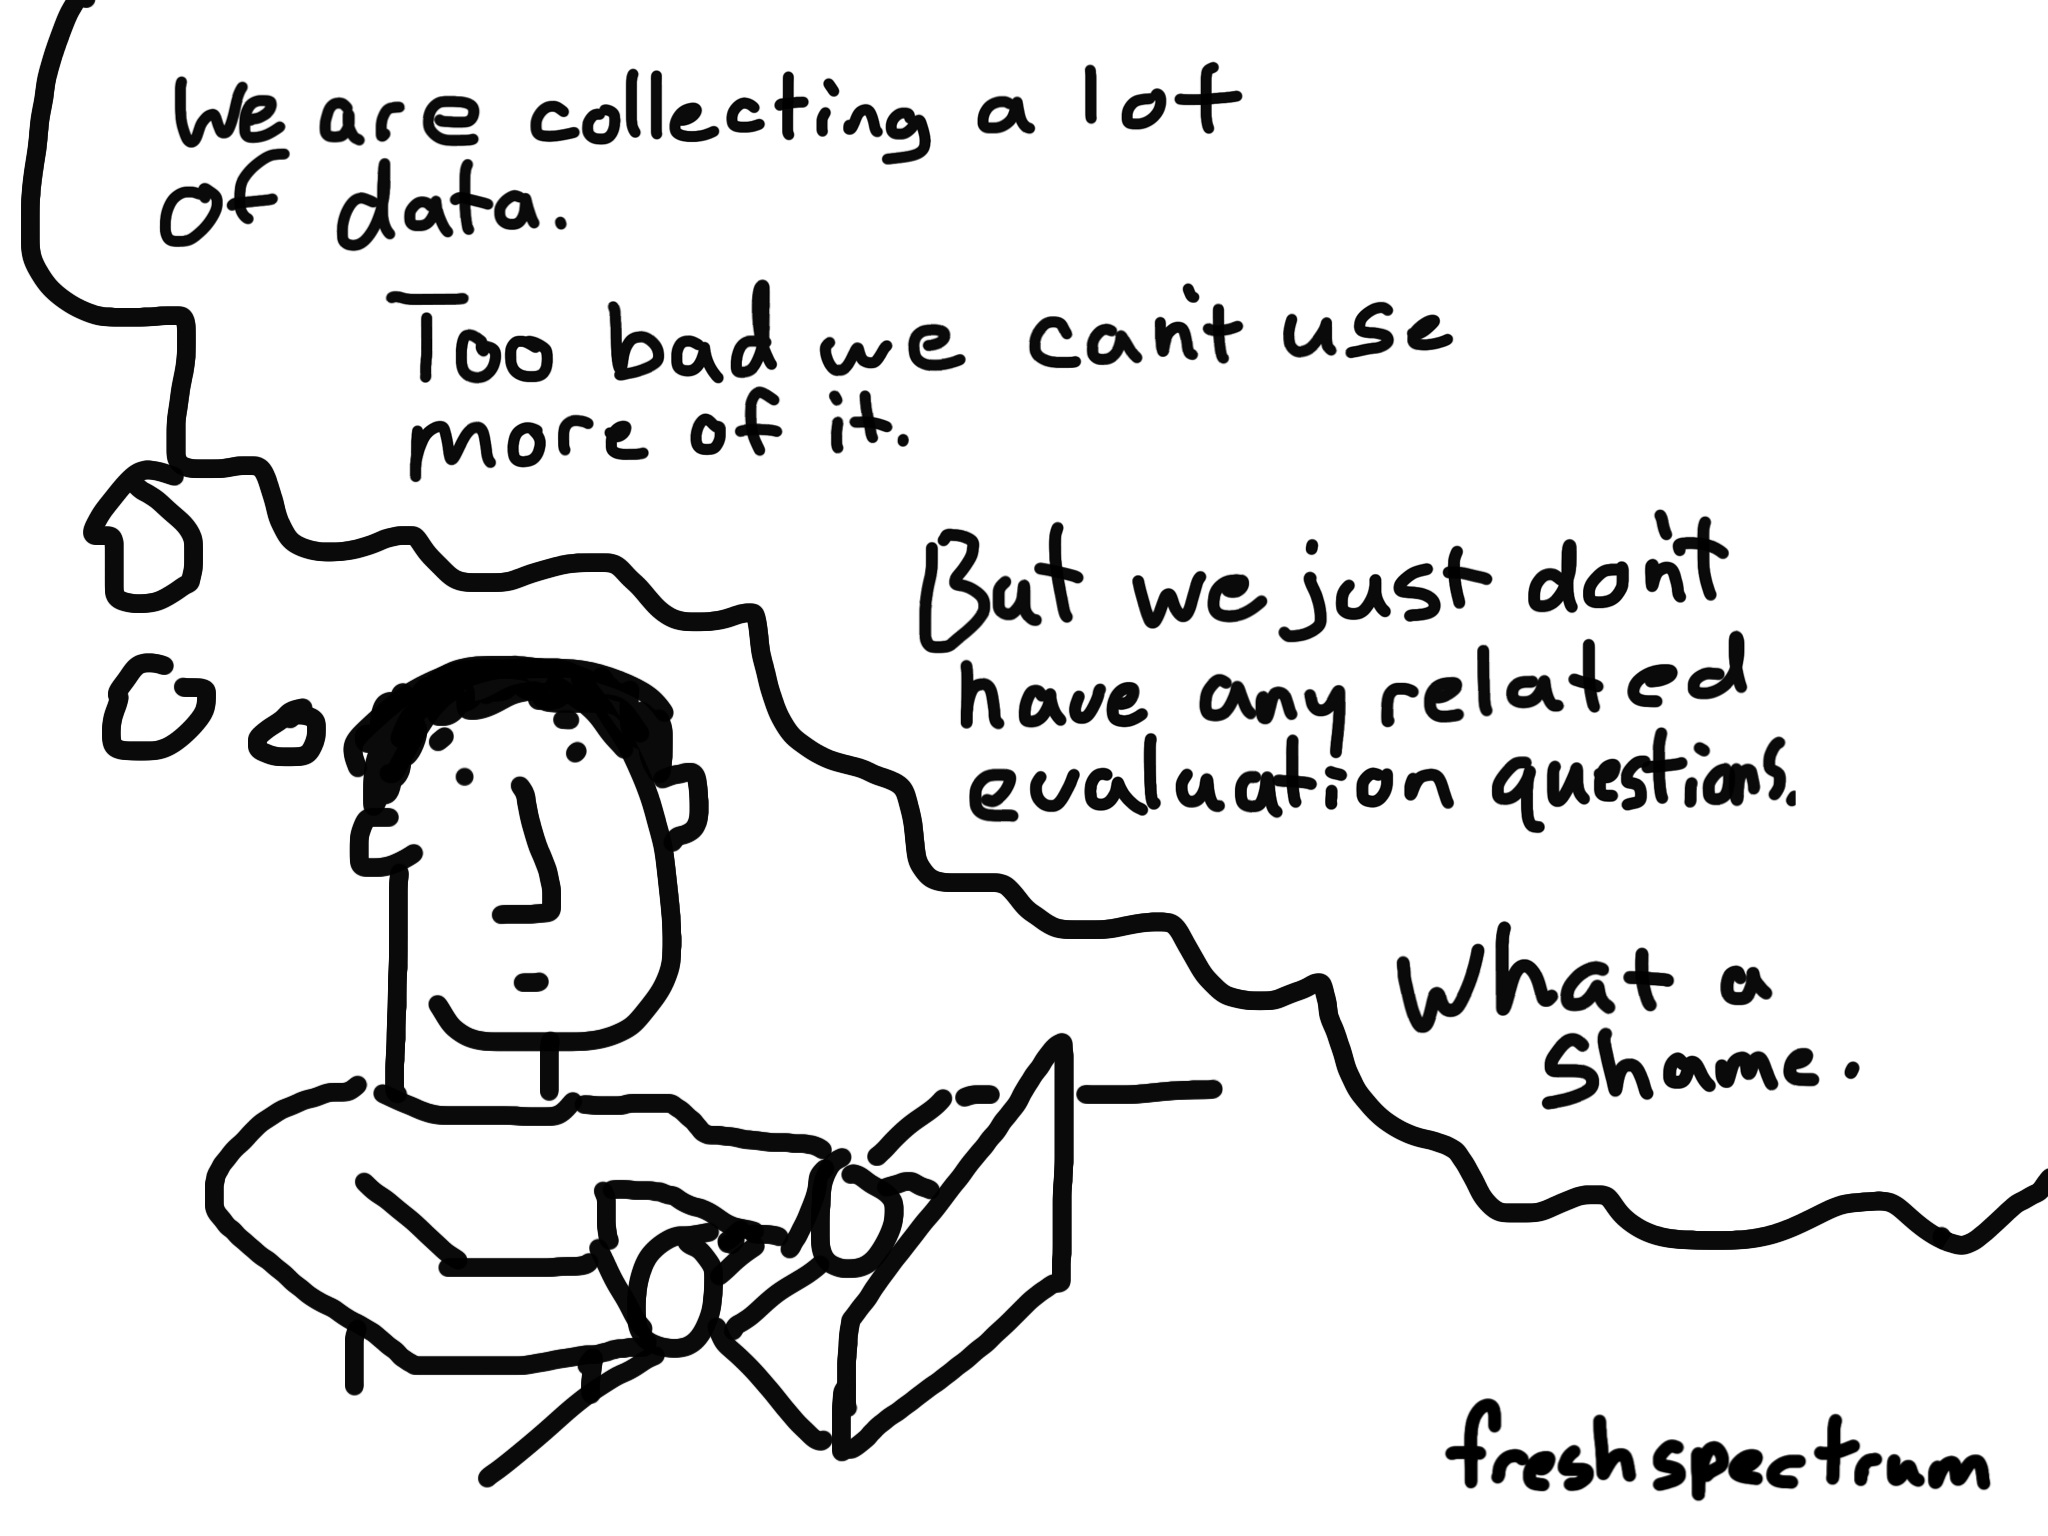 Cartoon-We are collecting a lot of data...Too bad we can't use more of it...But we just don't have any related evaluation questions...What a shame.